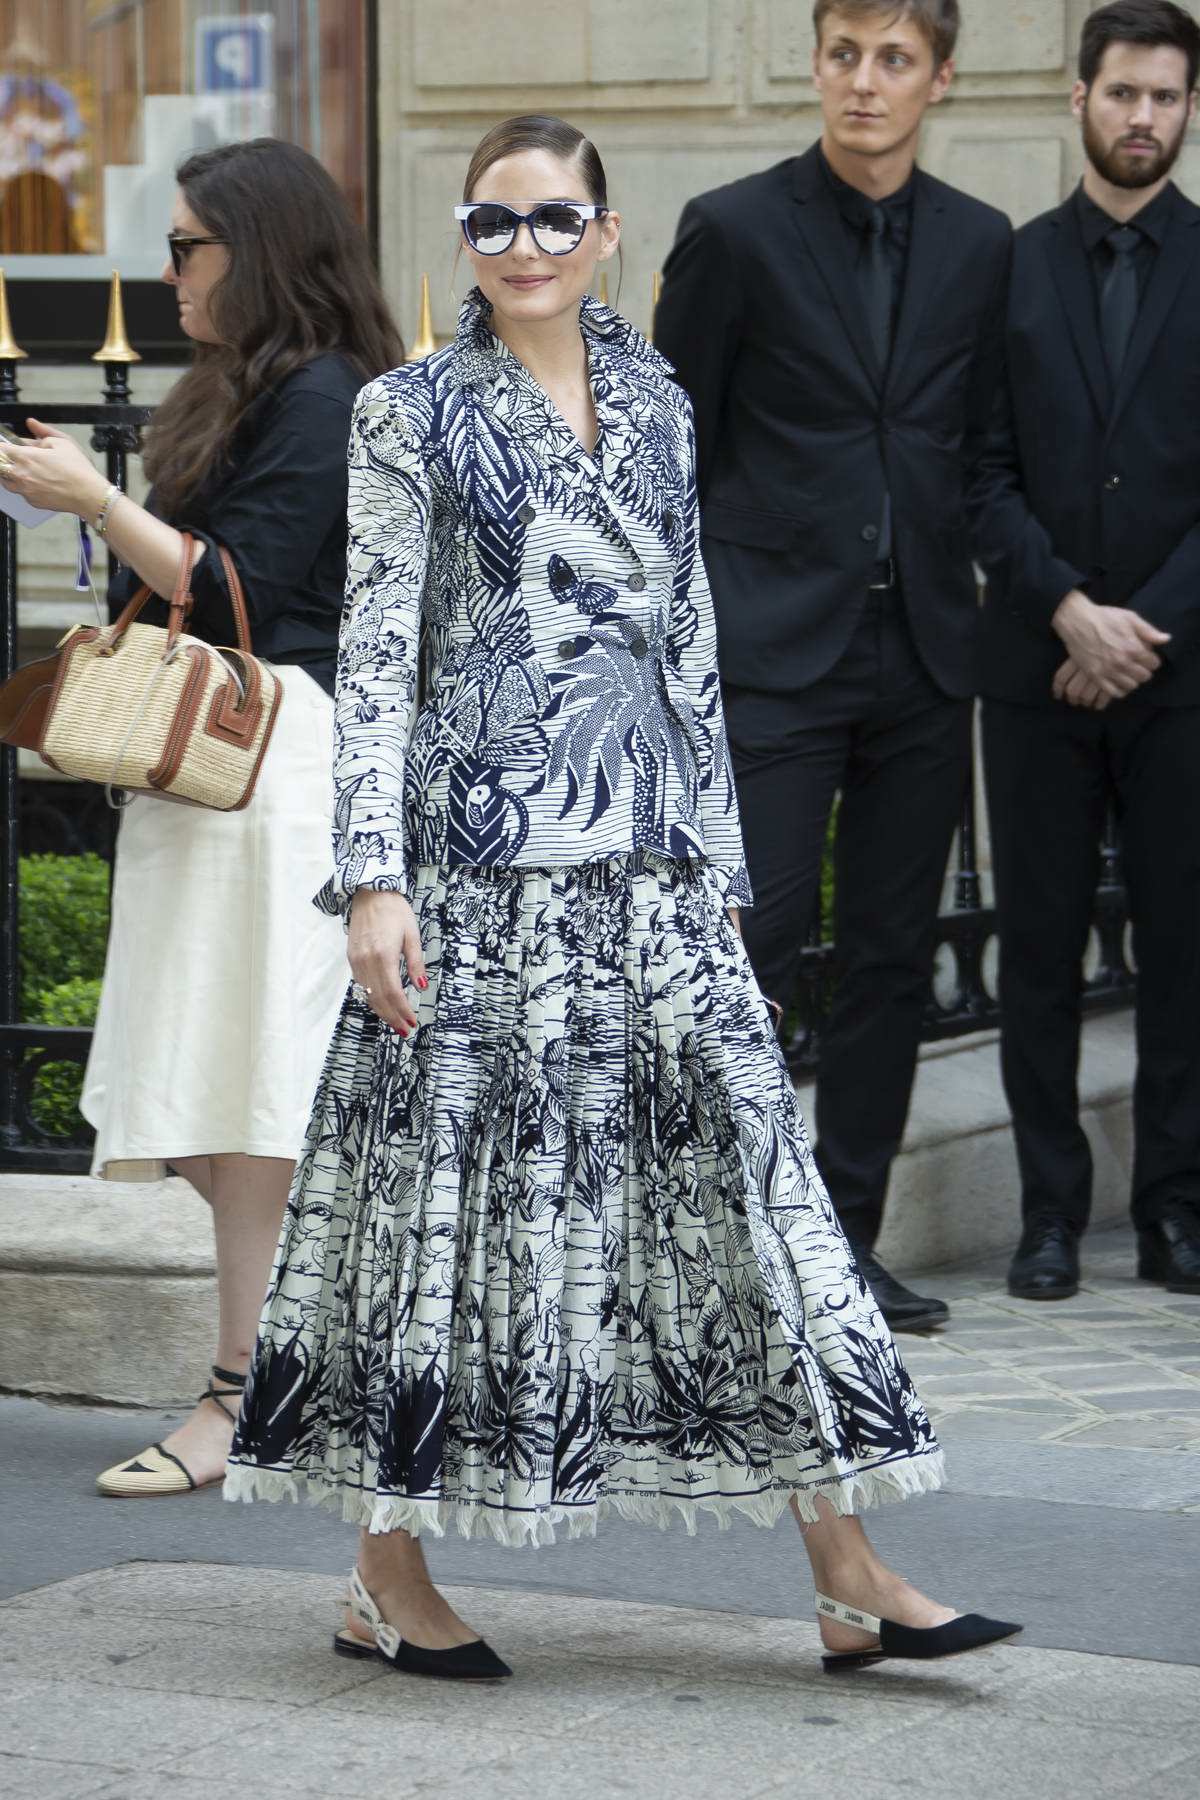 Olivia Palermo attends the Christian Dior Haute Couture Fall/Winter 2019/20 show during Paris Fashion Week in Paris, France